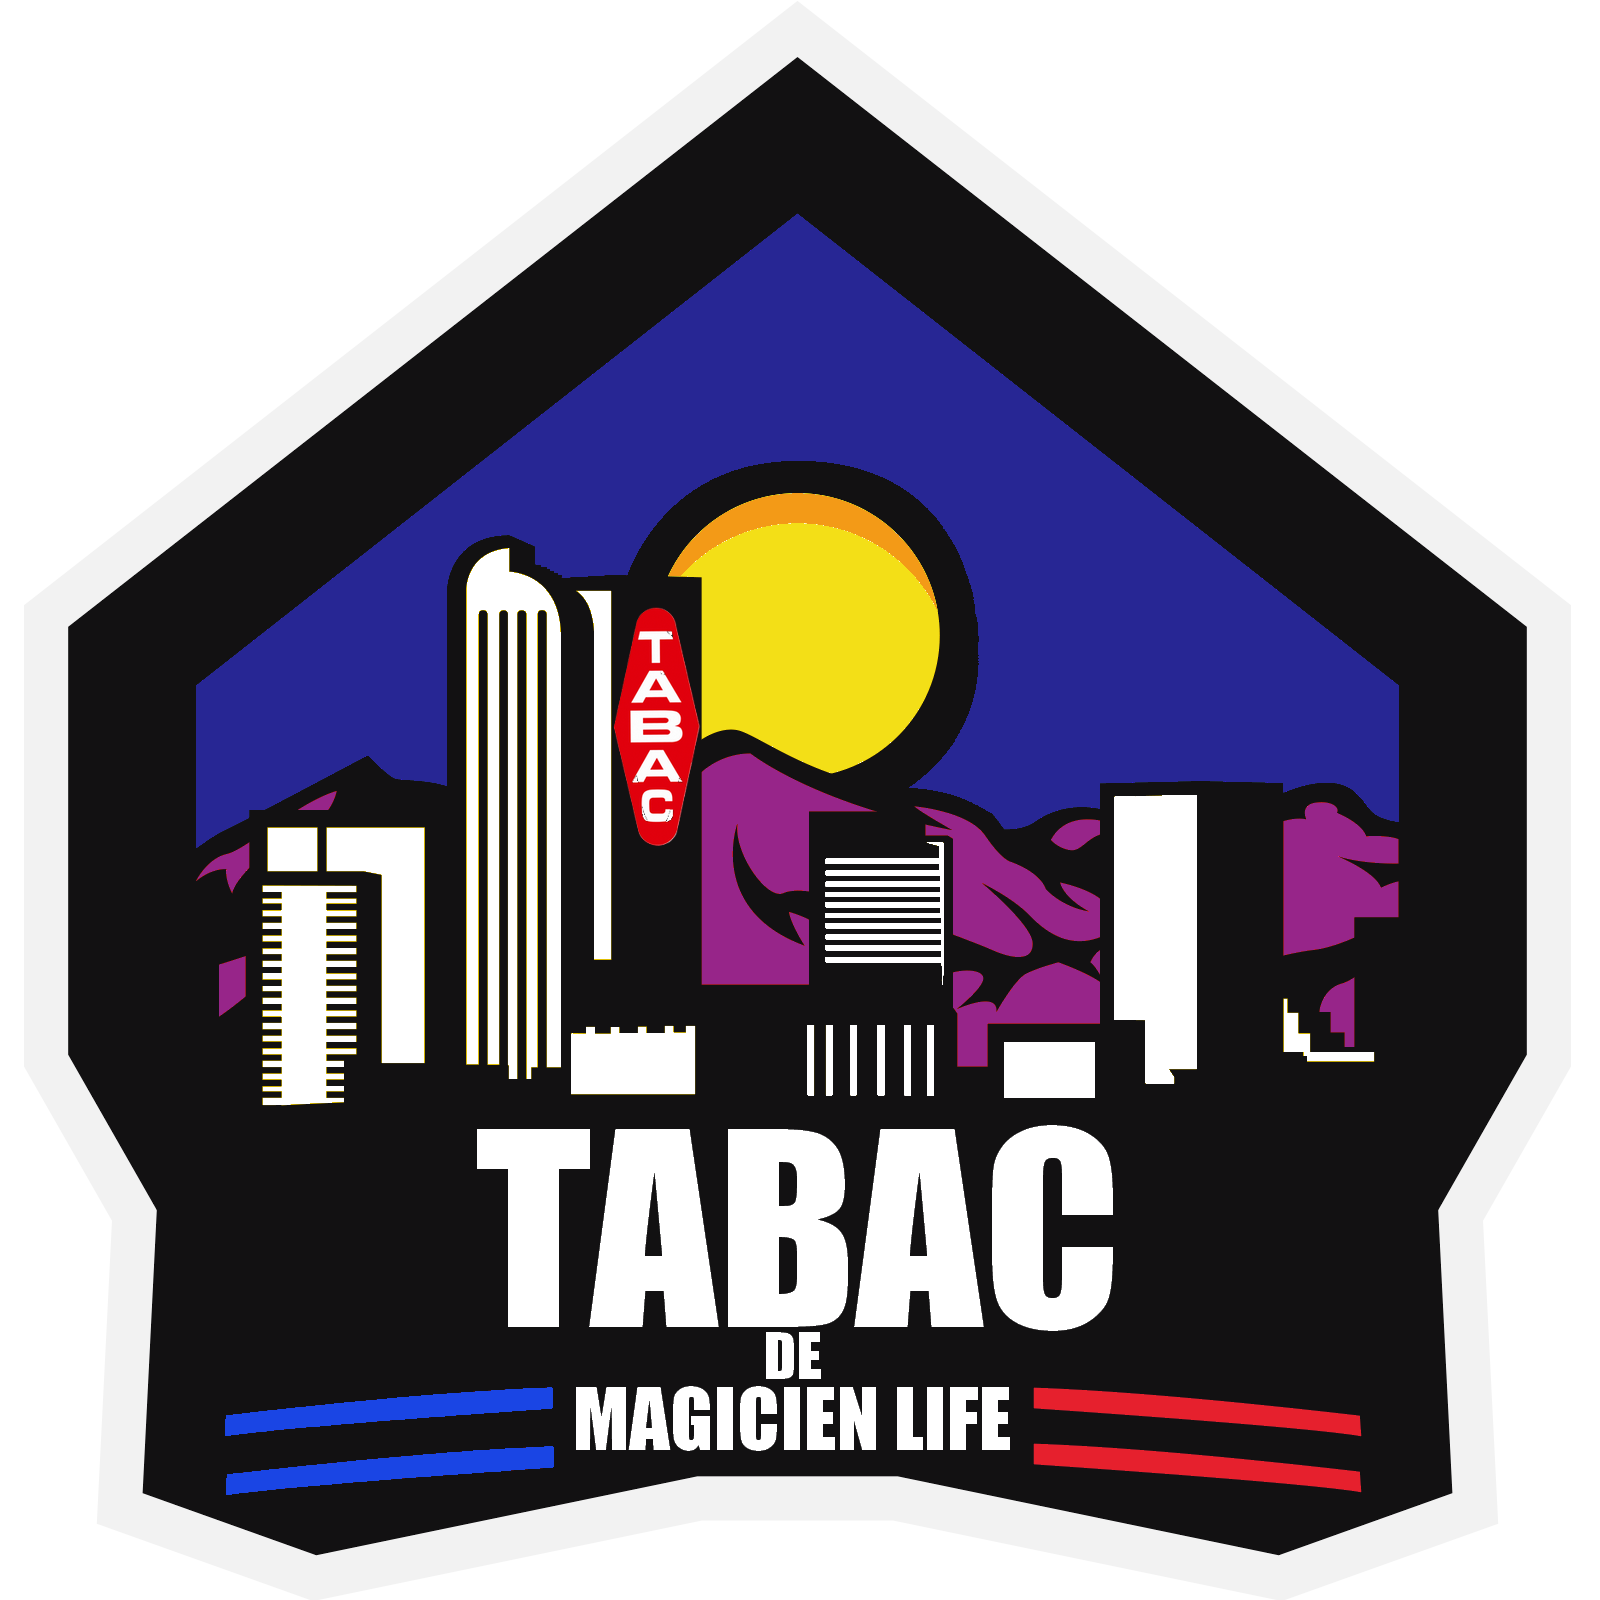 6070f7c048bd5-Logo_The_magicien_Life_RP_tabac_1.png